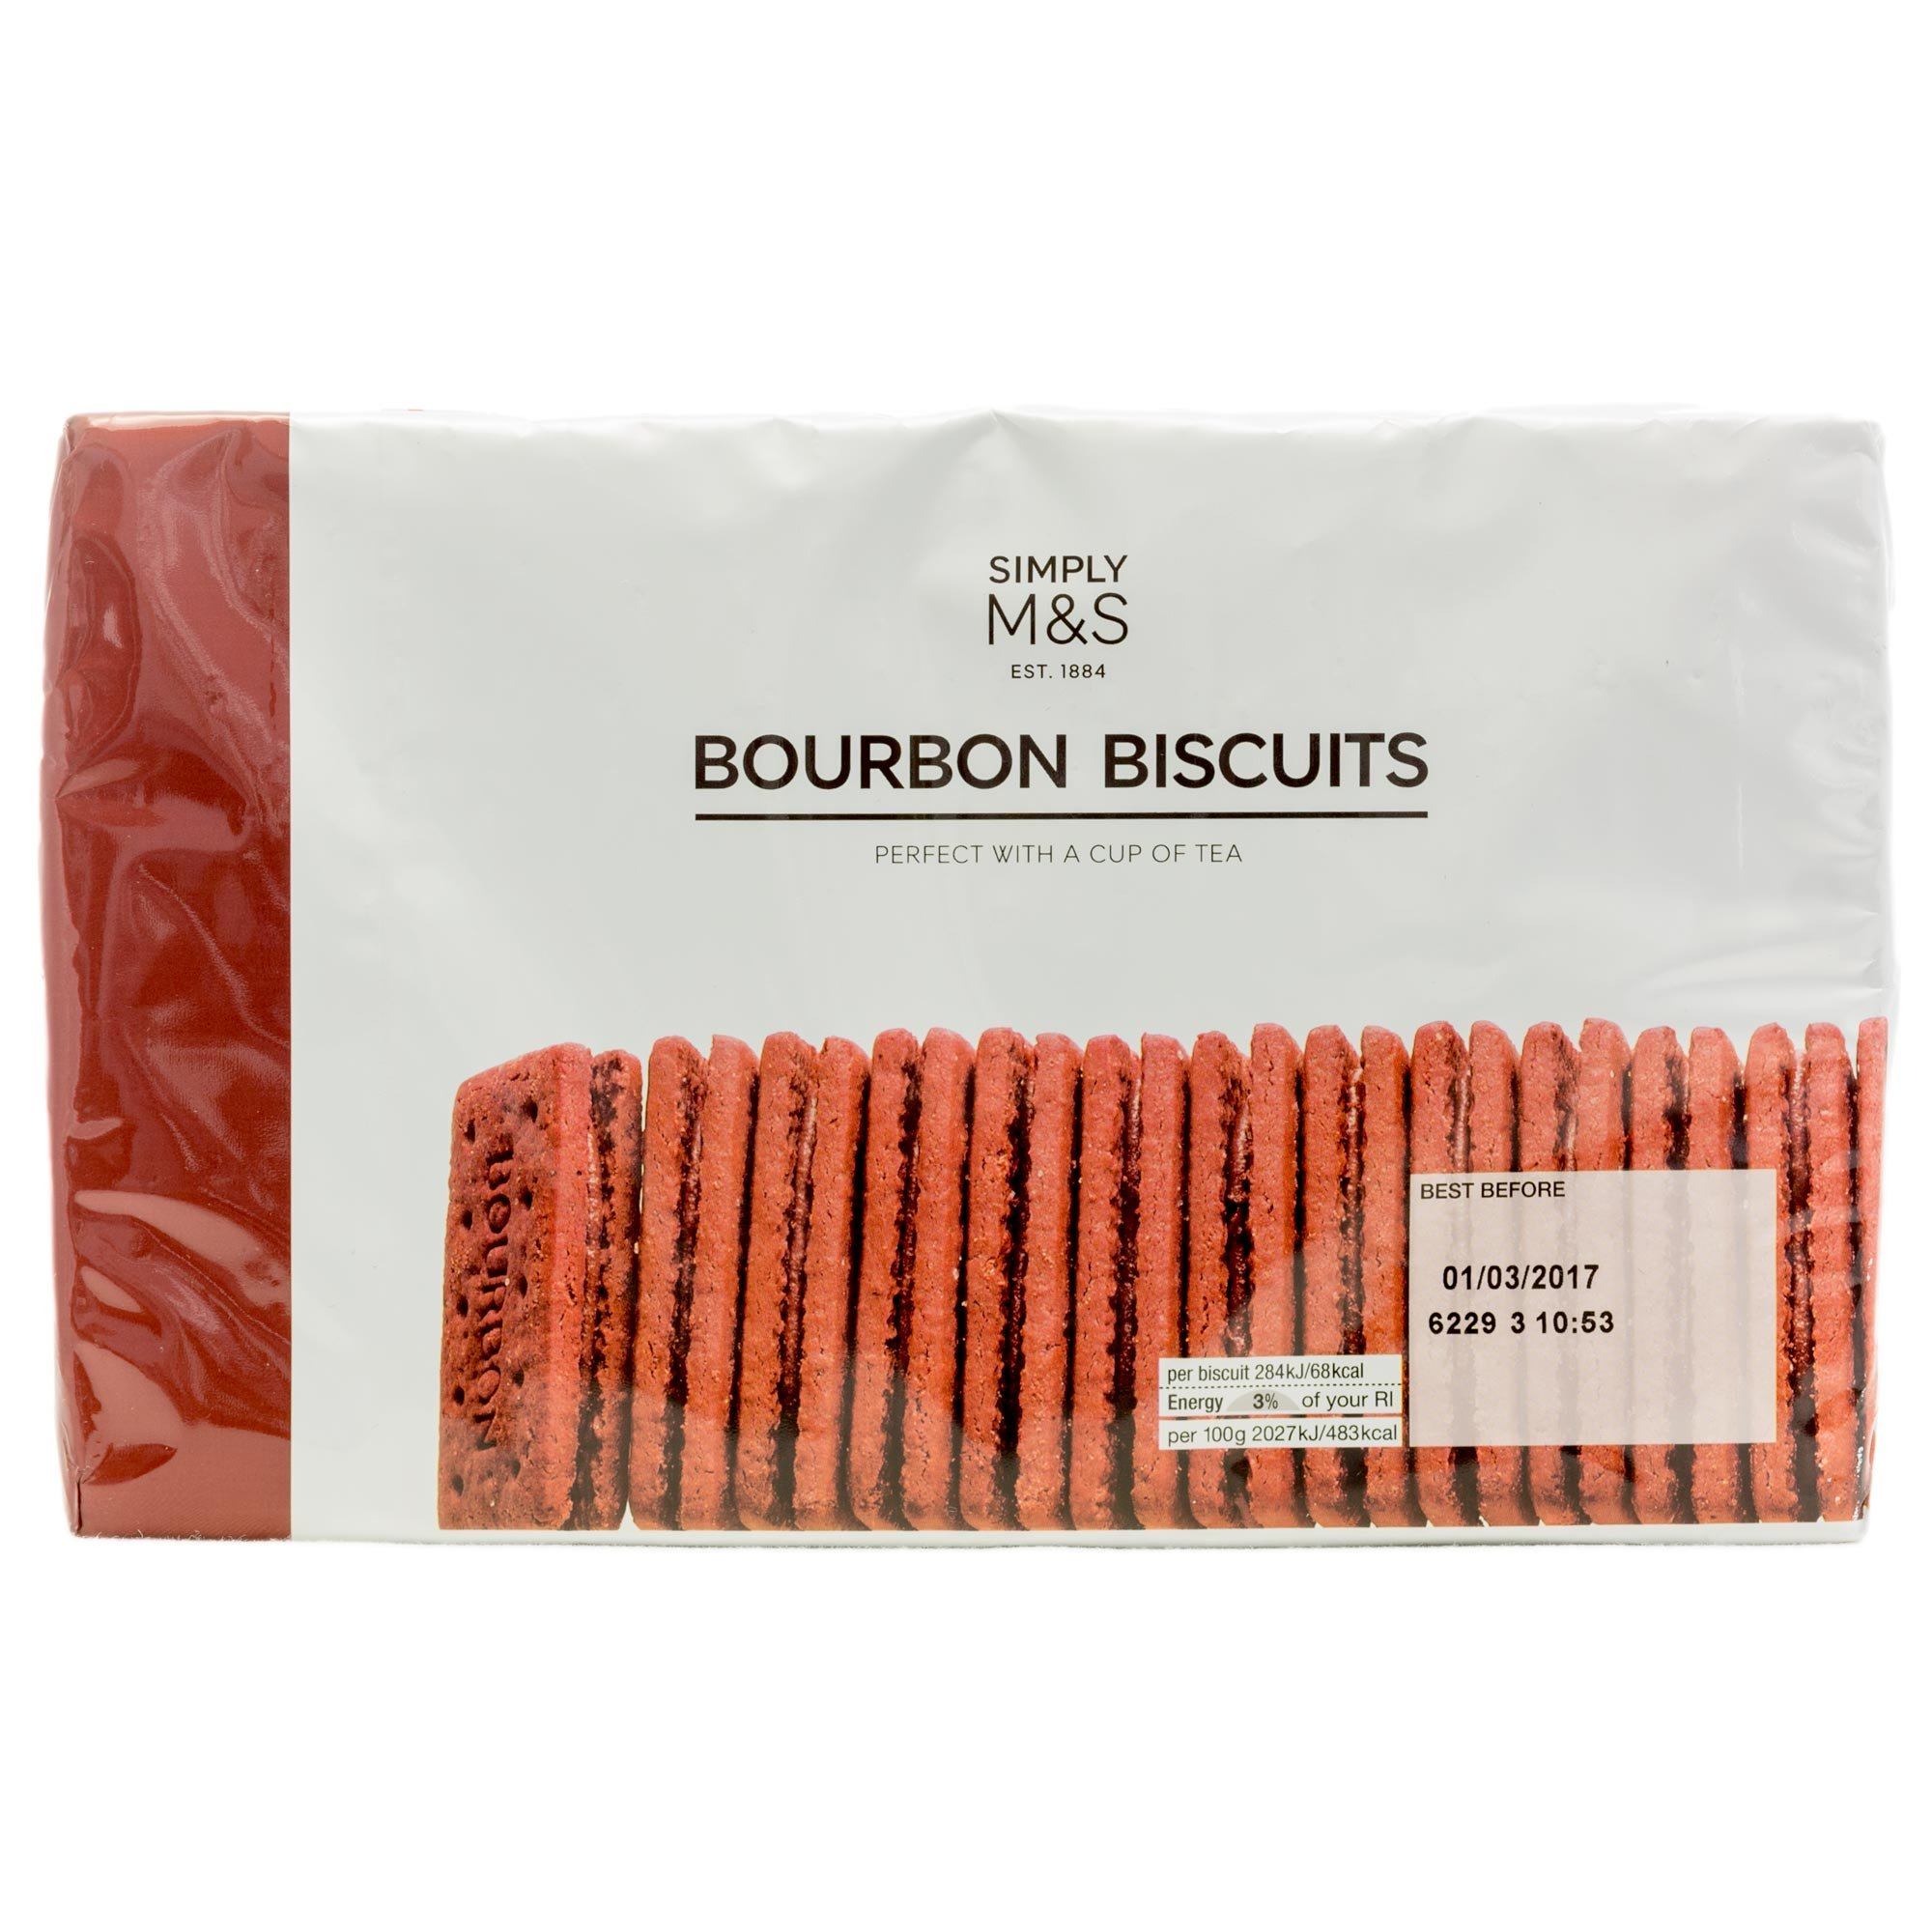 Marks & Spencer Bourbon Biscuits - Two Packs - 400g x2 by Marks & Spencer